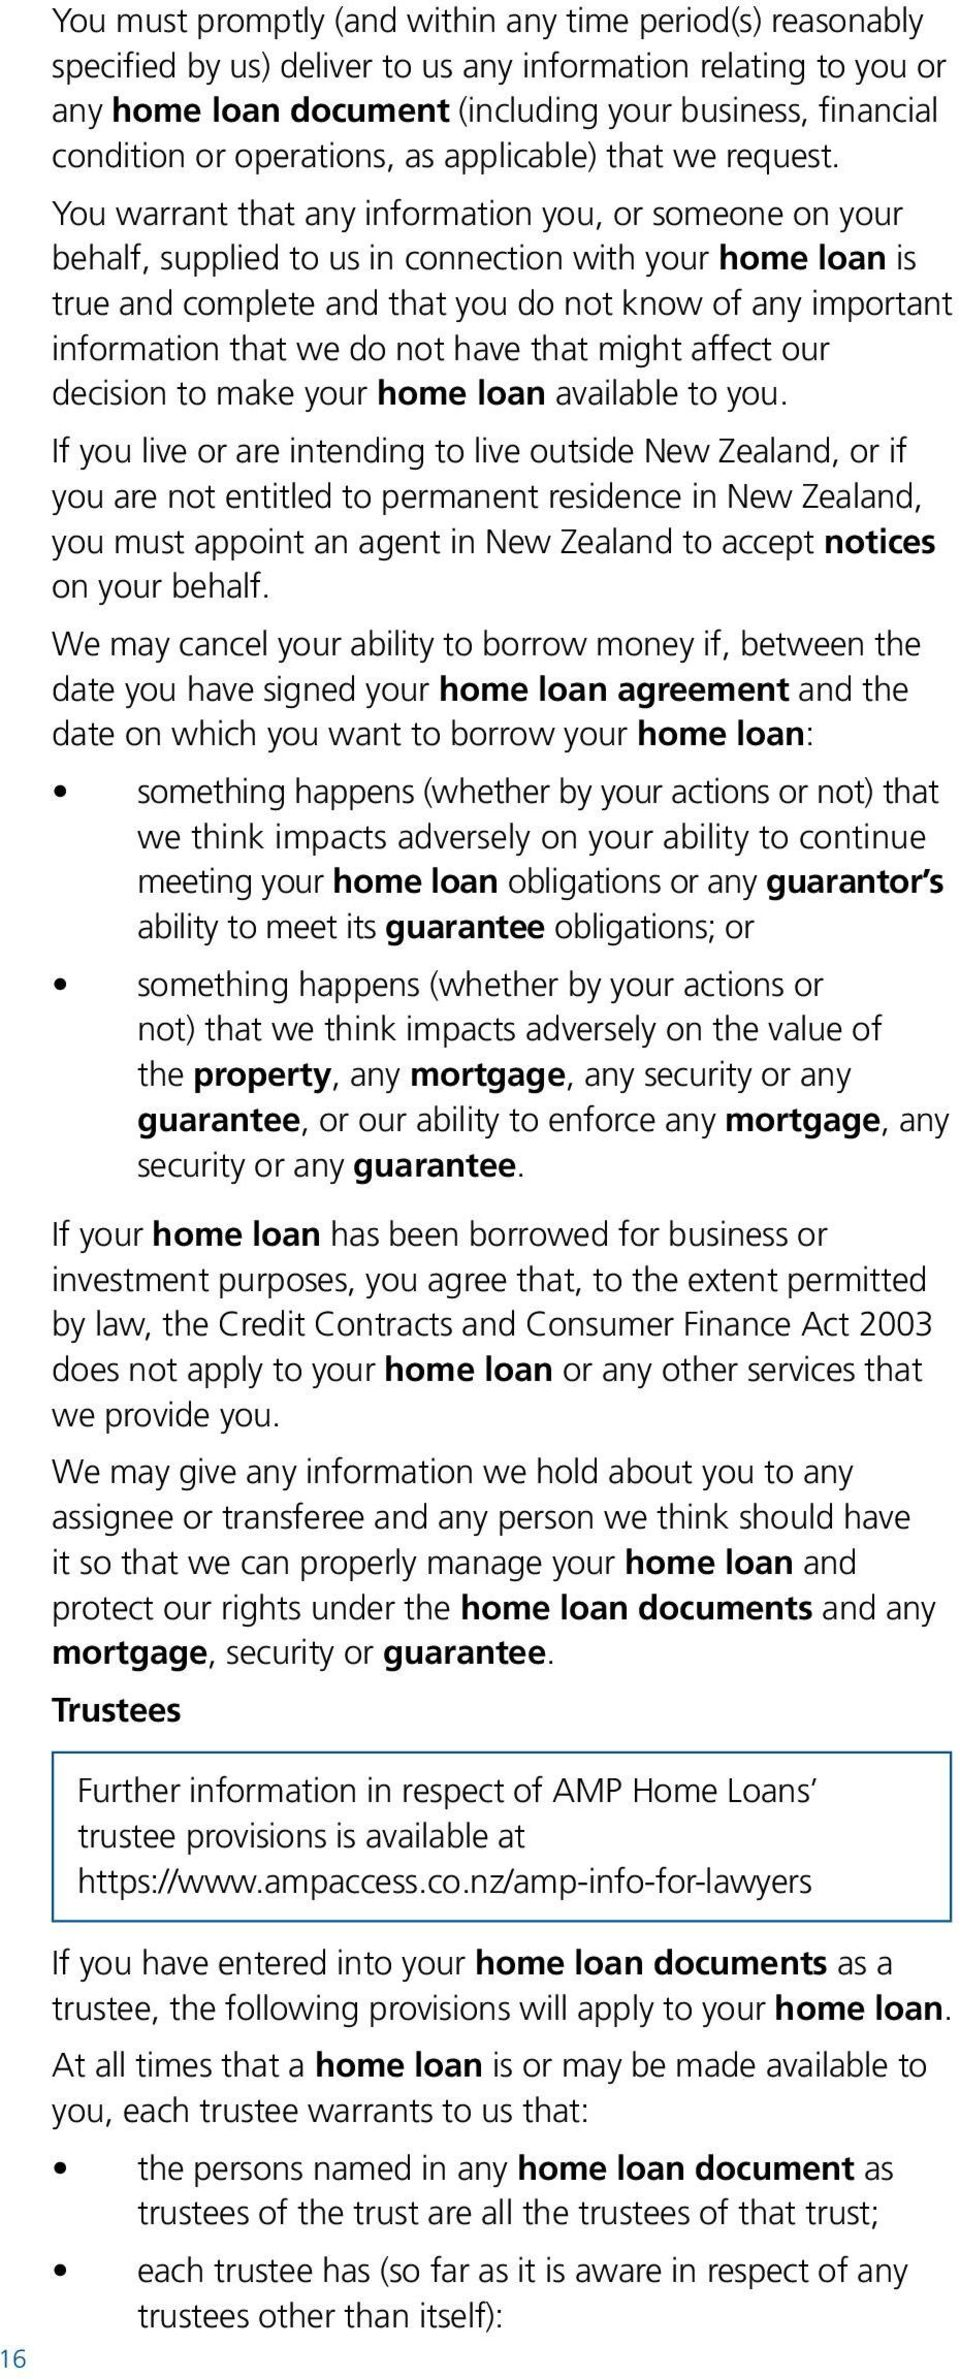 You warrant that any information you, or someone on your behalf, supplied to us in connection with your home loan is true and complete and that you do not know of any important information that we do